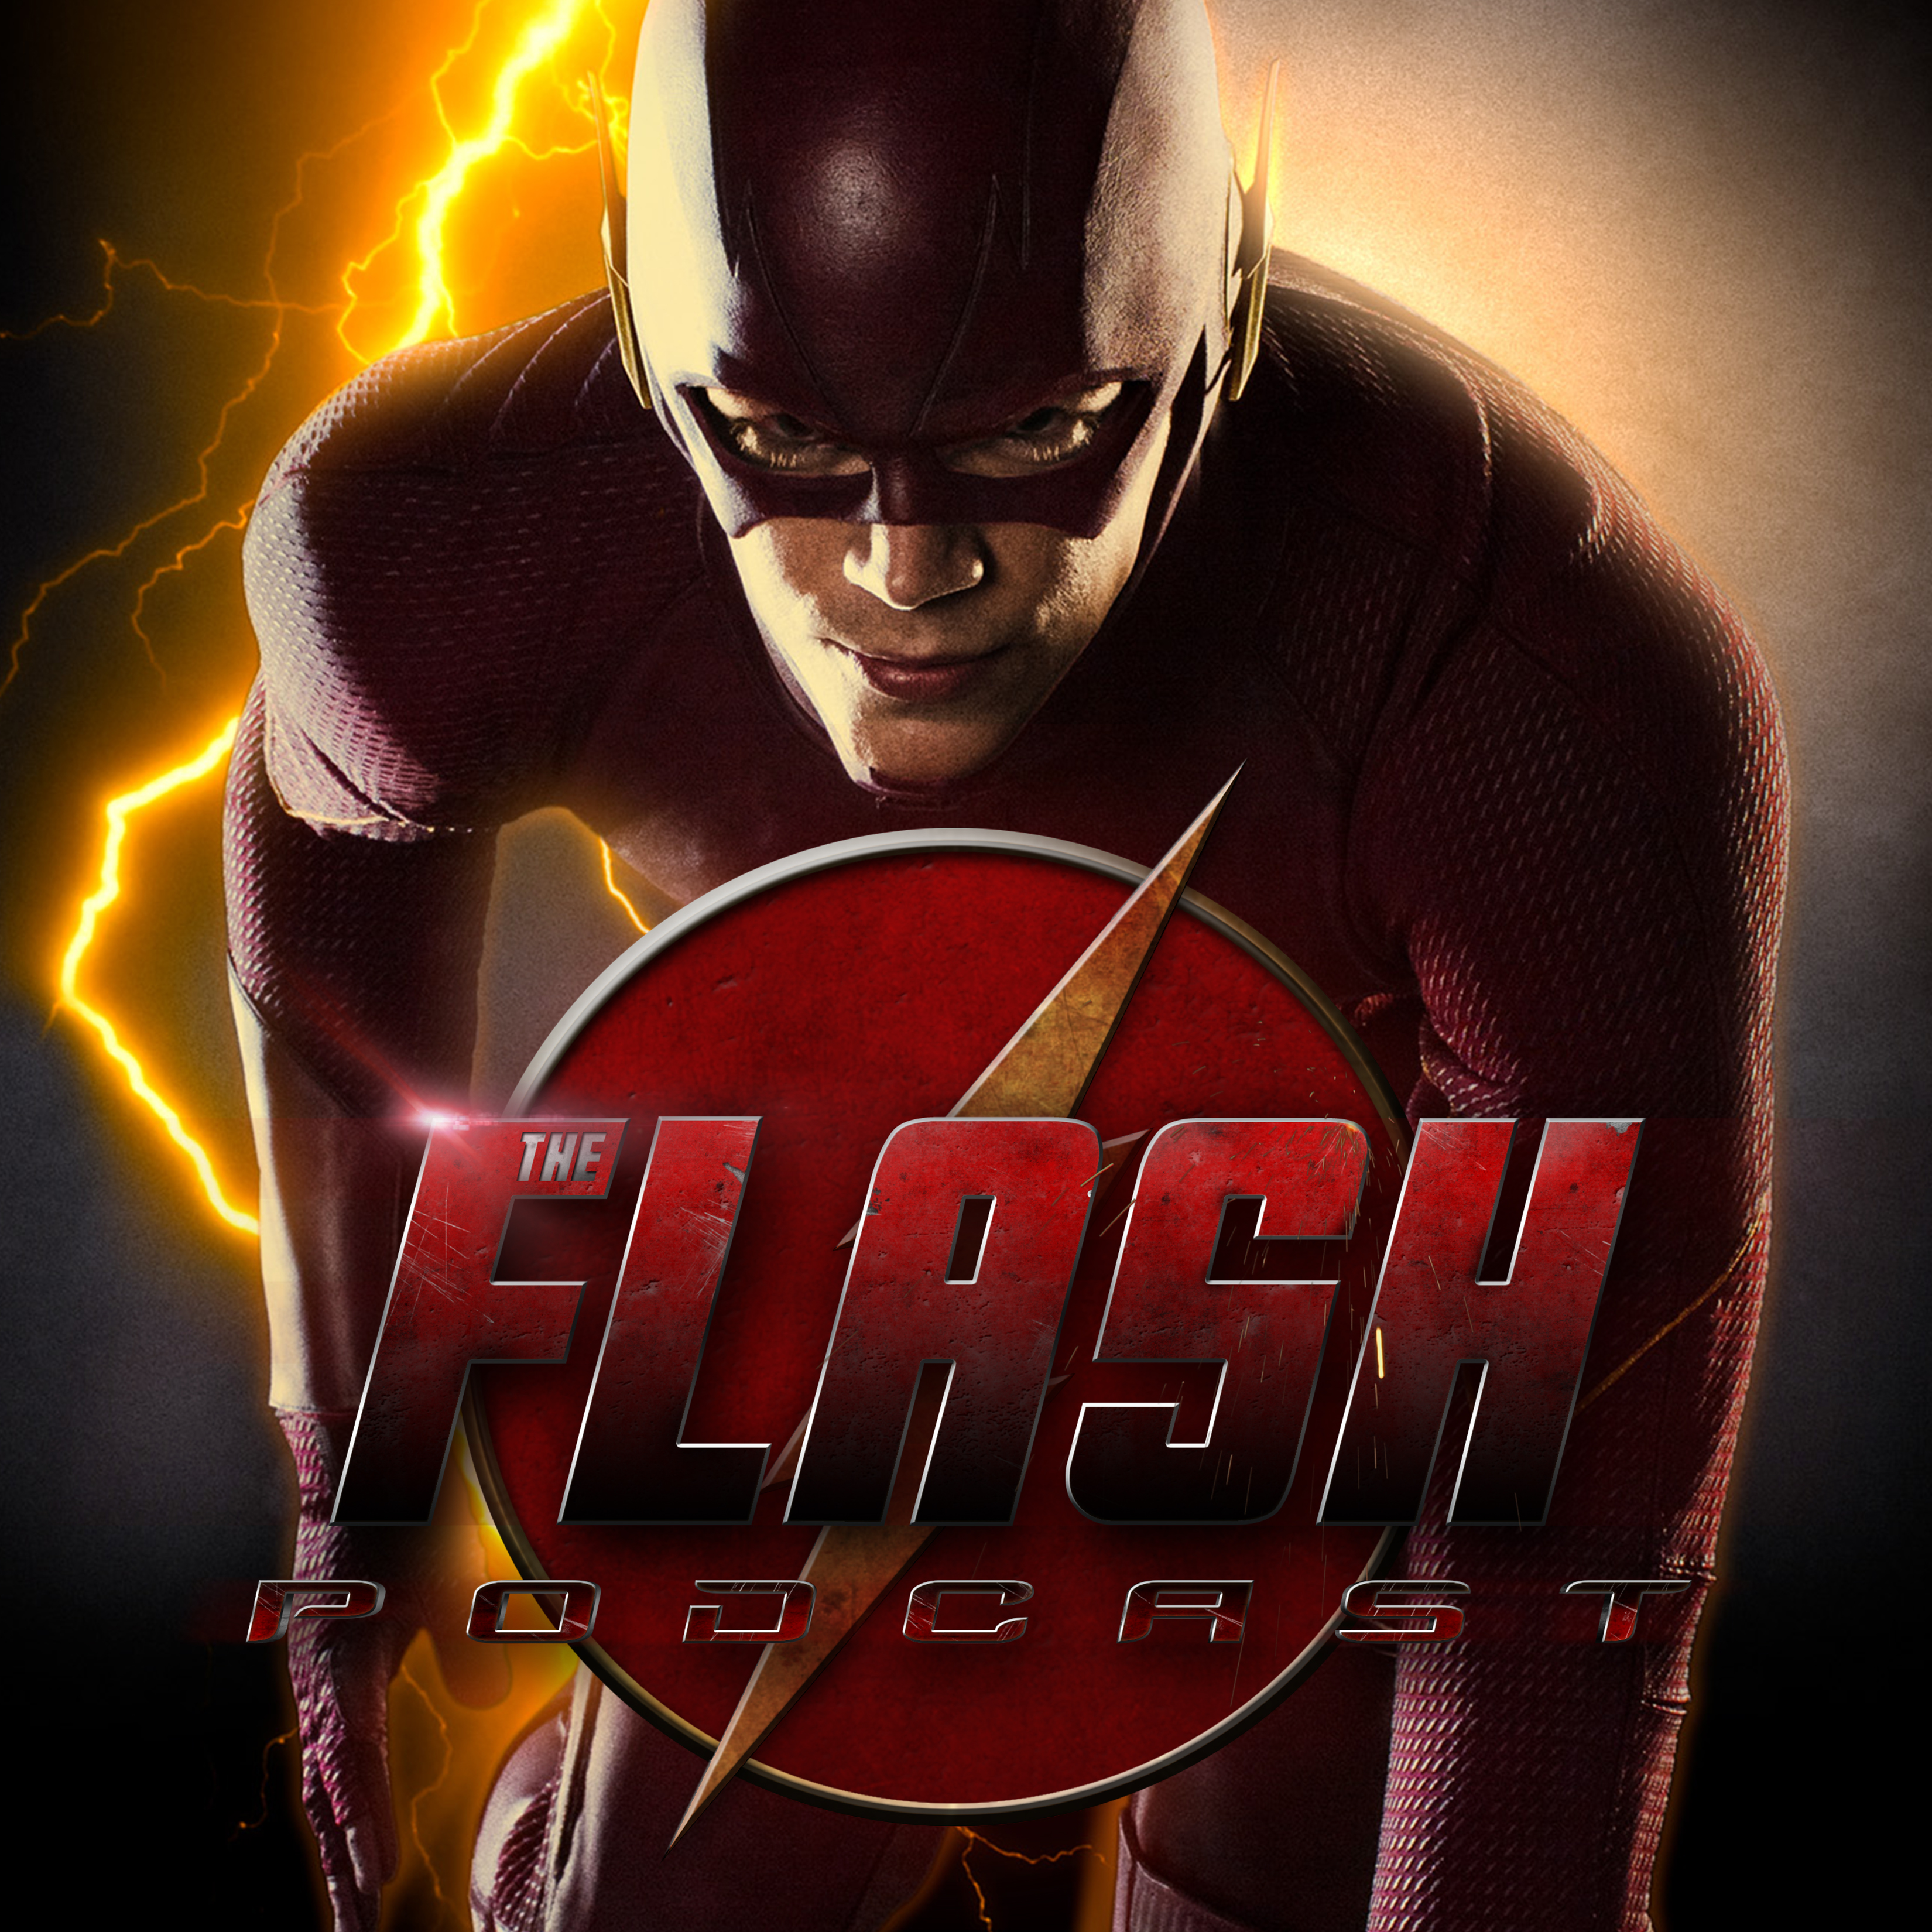 The Flash Podcast 023 - DC Cinematic Universe (Part III)